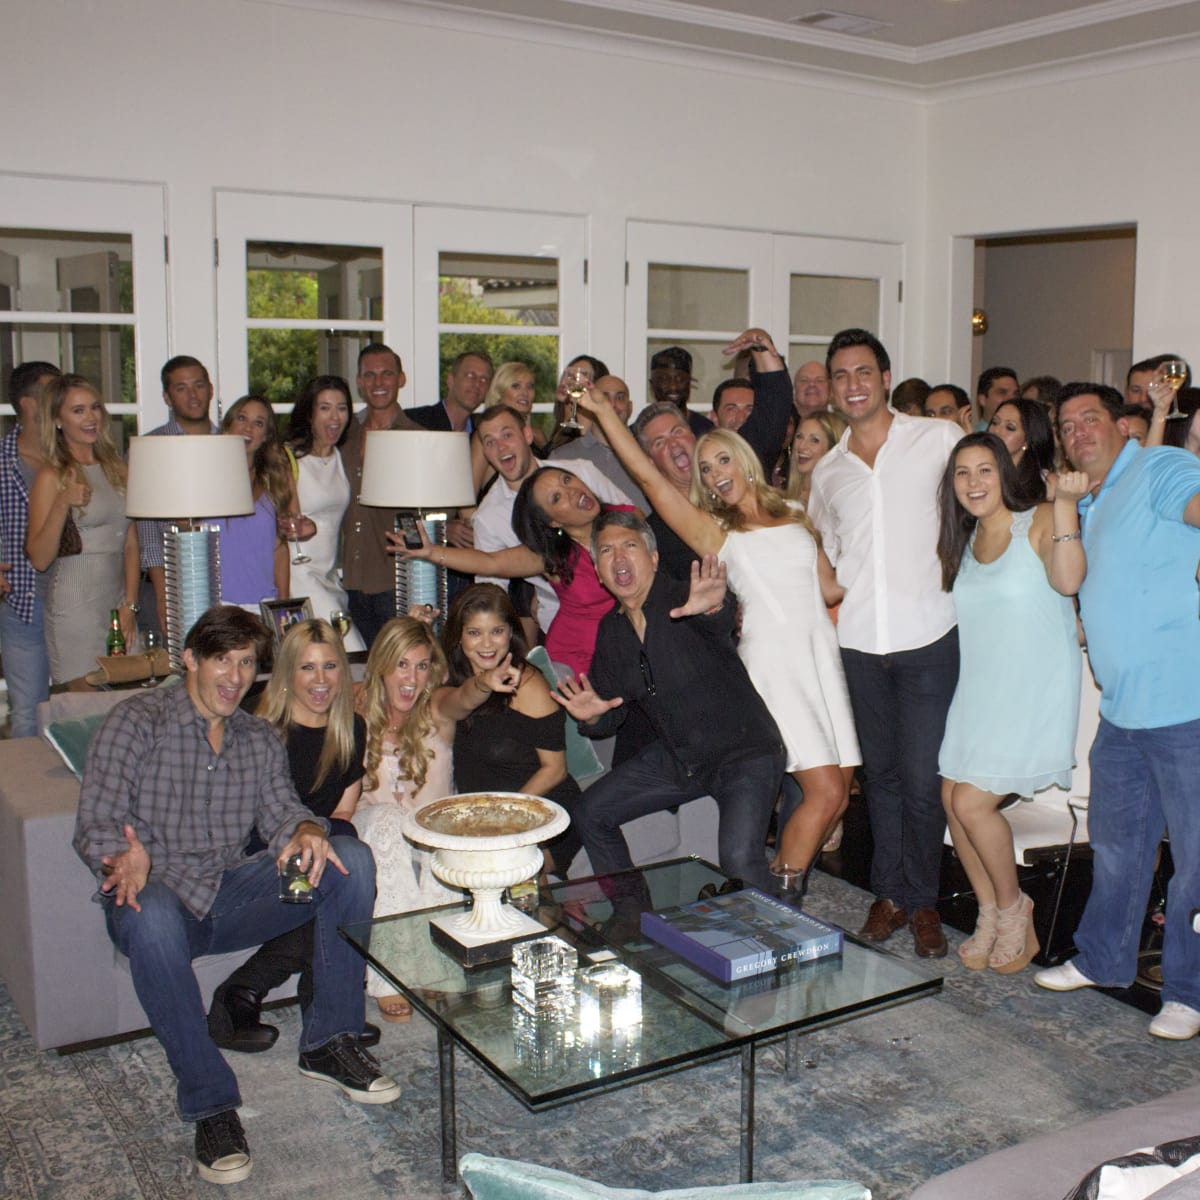 Houston, Chita Johnson engagement party, July 2015, group photo